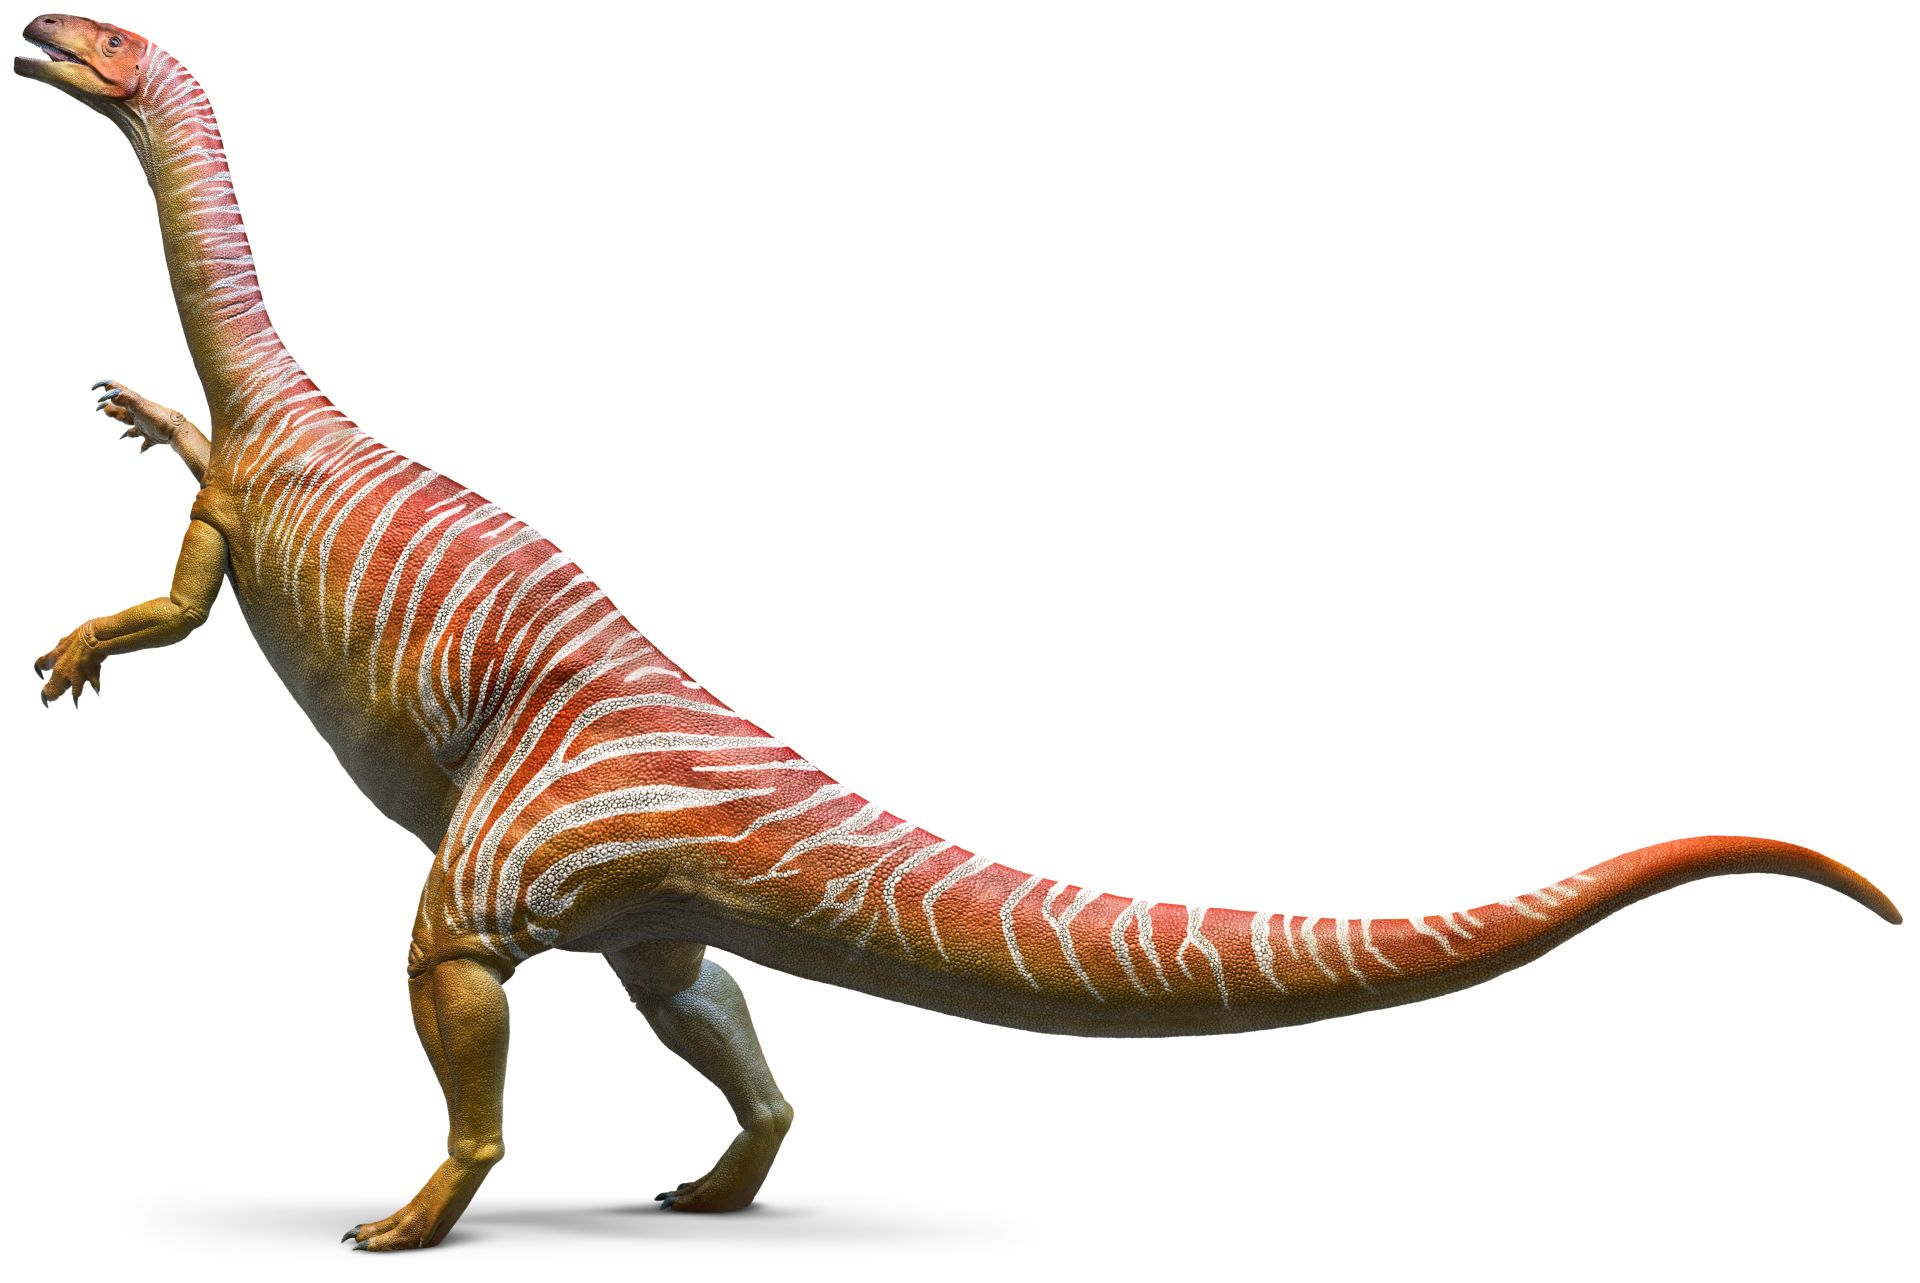 Plateosaurus_whole_bq2b8s.jpg